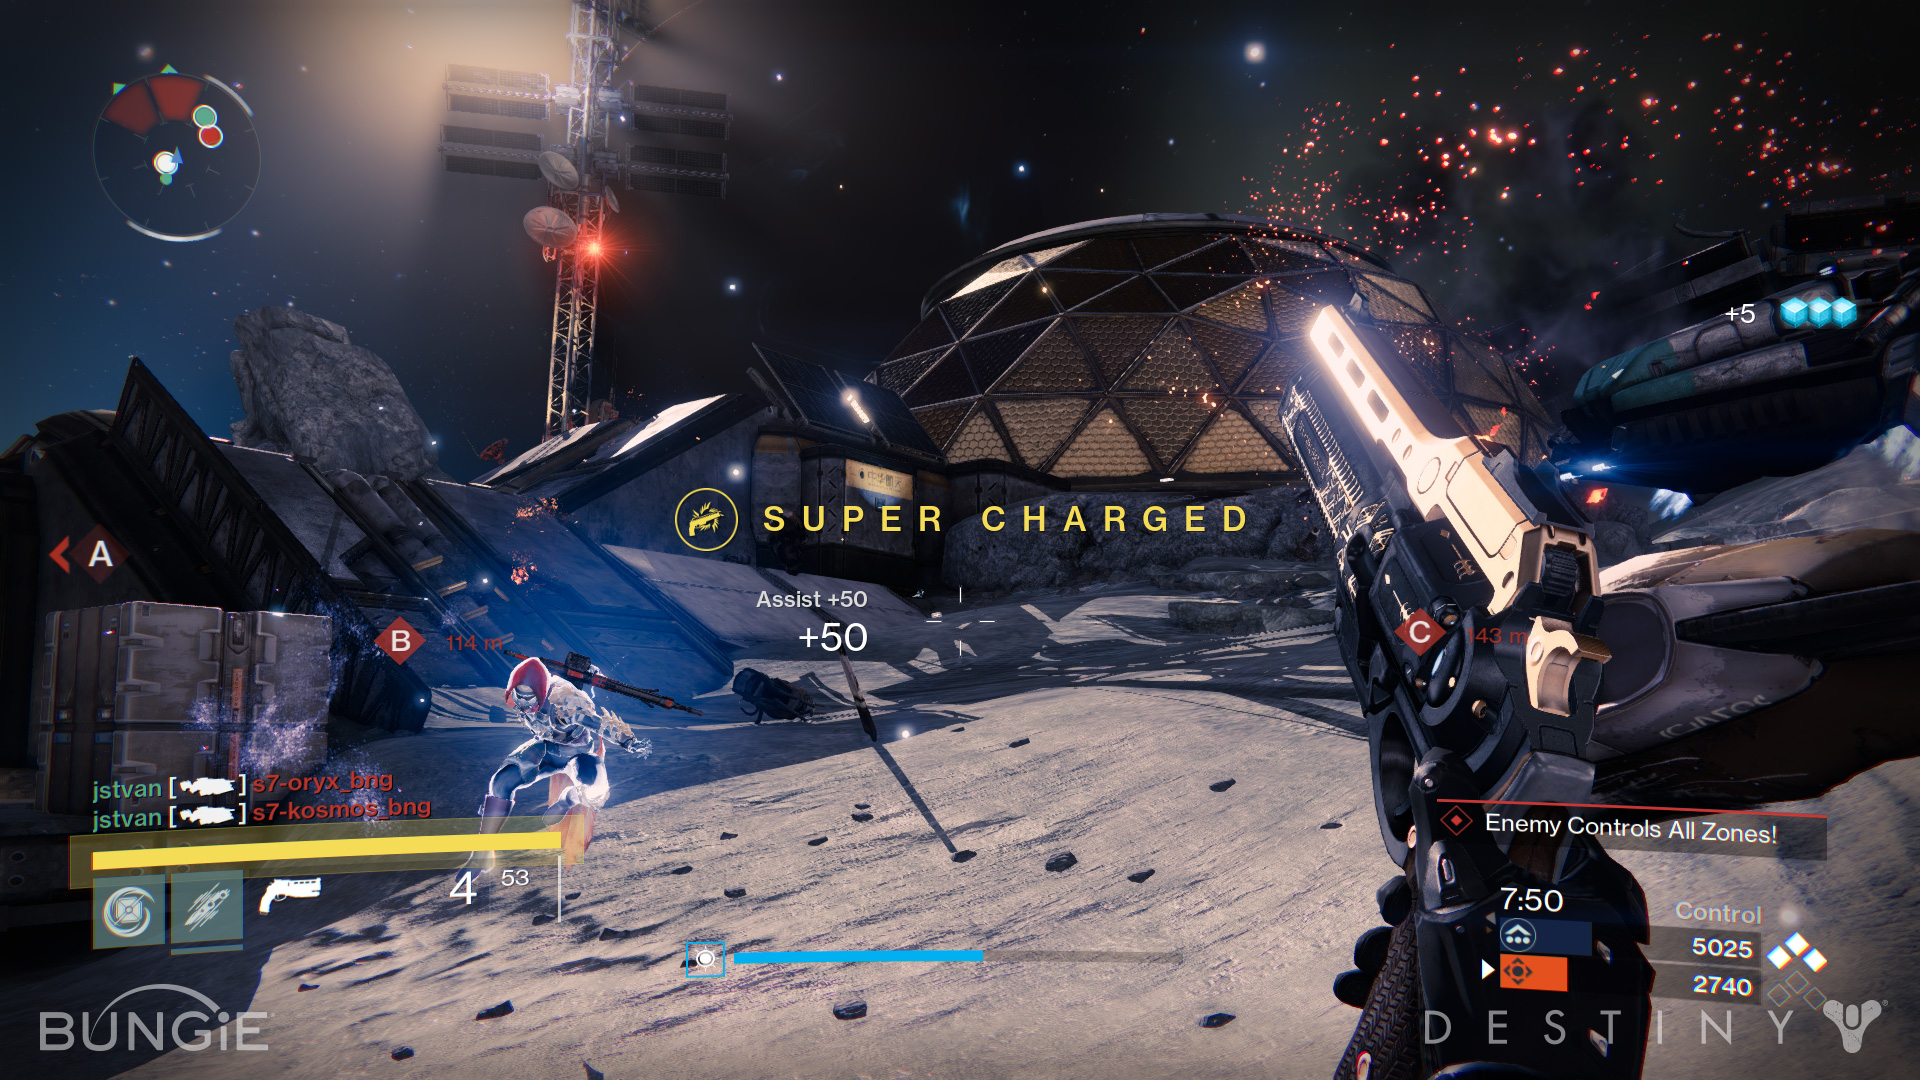 Destiny's multiplayer leaves much to be desired, but is still fun.